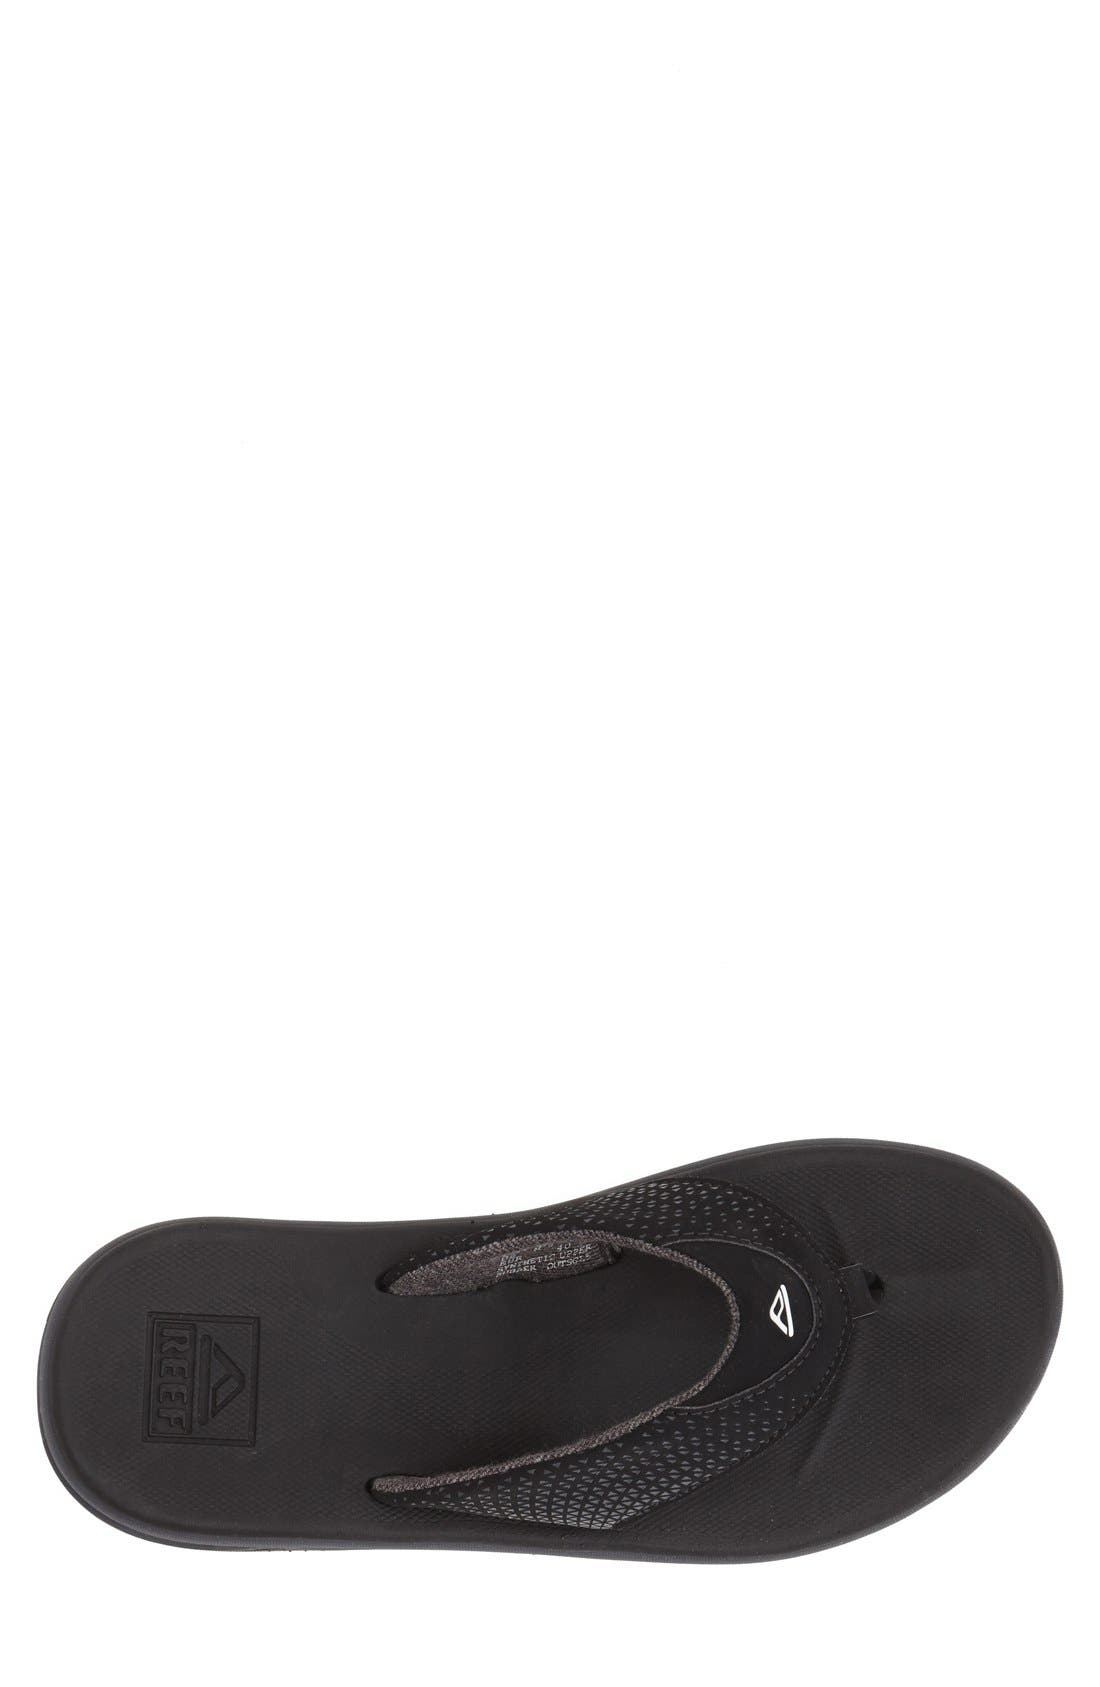 'Rover' Flip Flop,                             Alternate thumbnail 3, color,                             Black